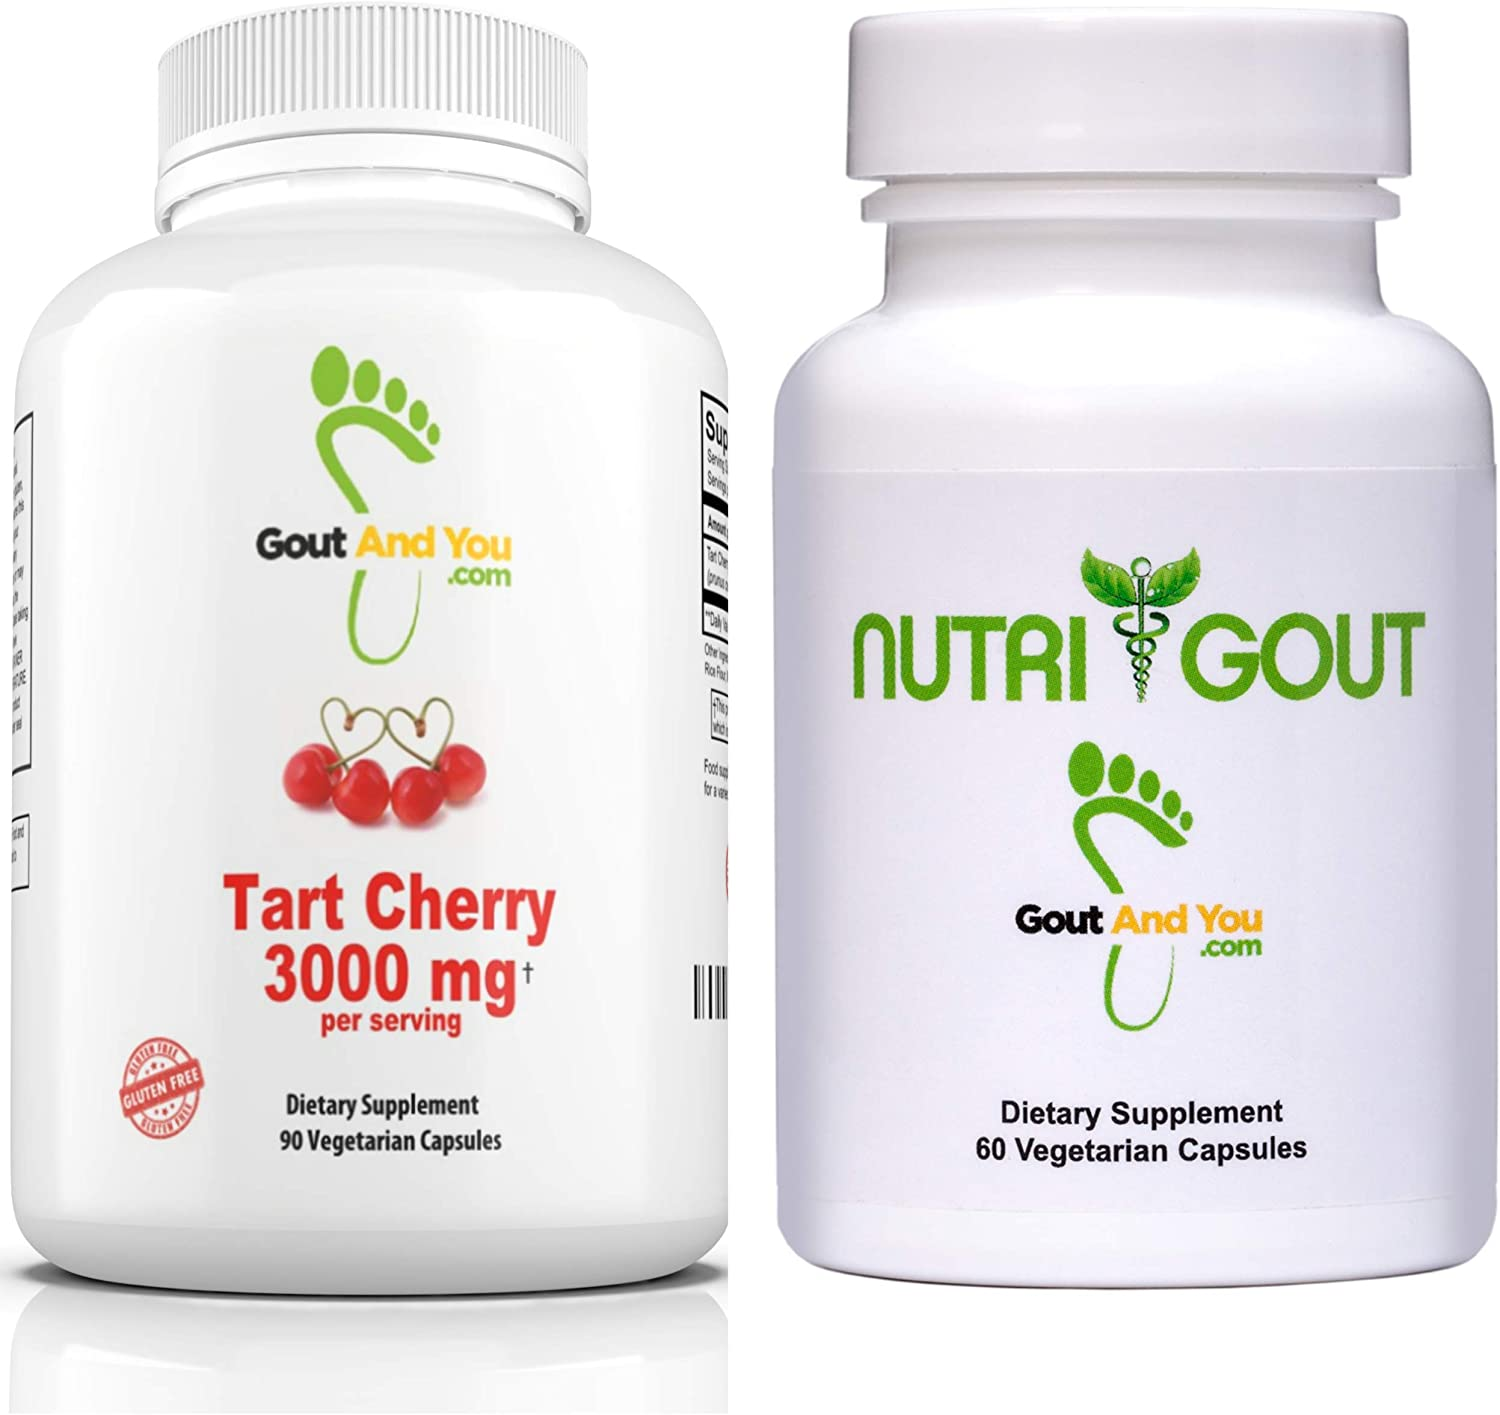 Tart Tucson Mall Cherry Extract - 90 Capsules Suppor All stores are sold Acid NutriGout Uric and